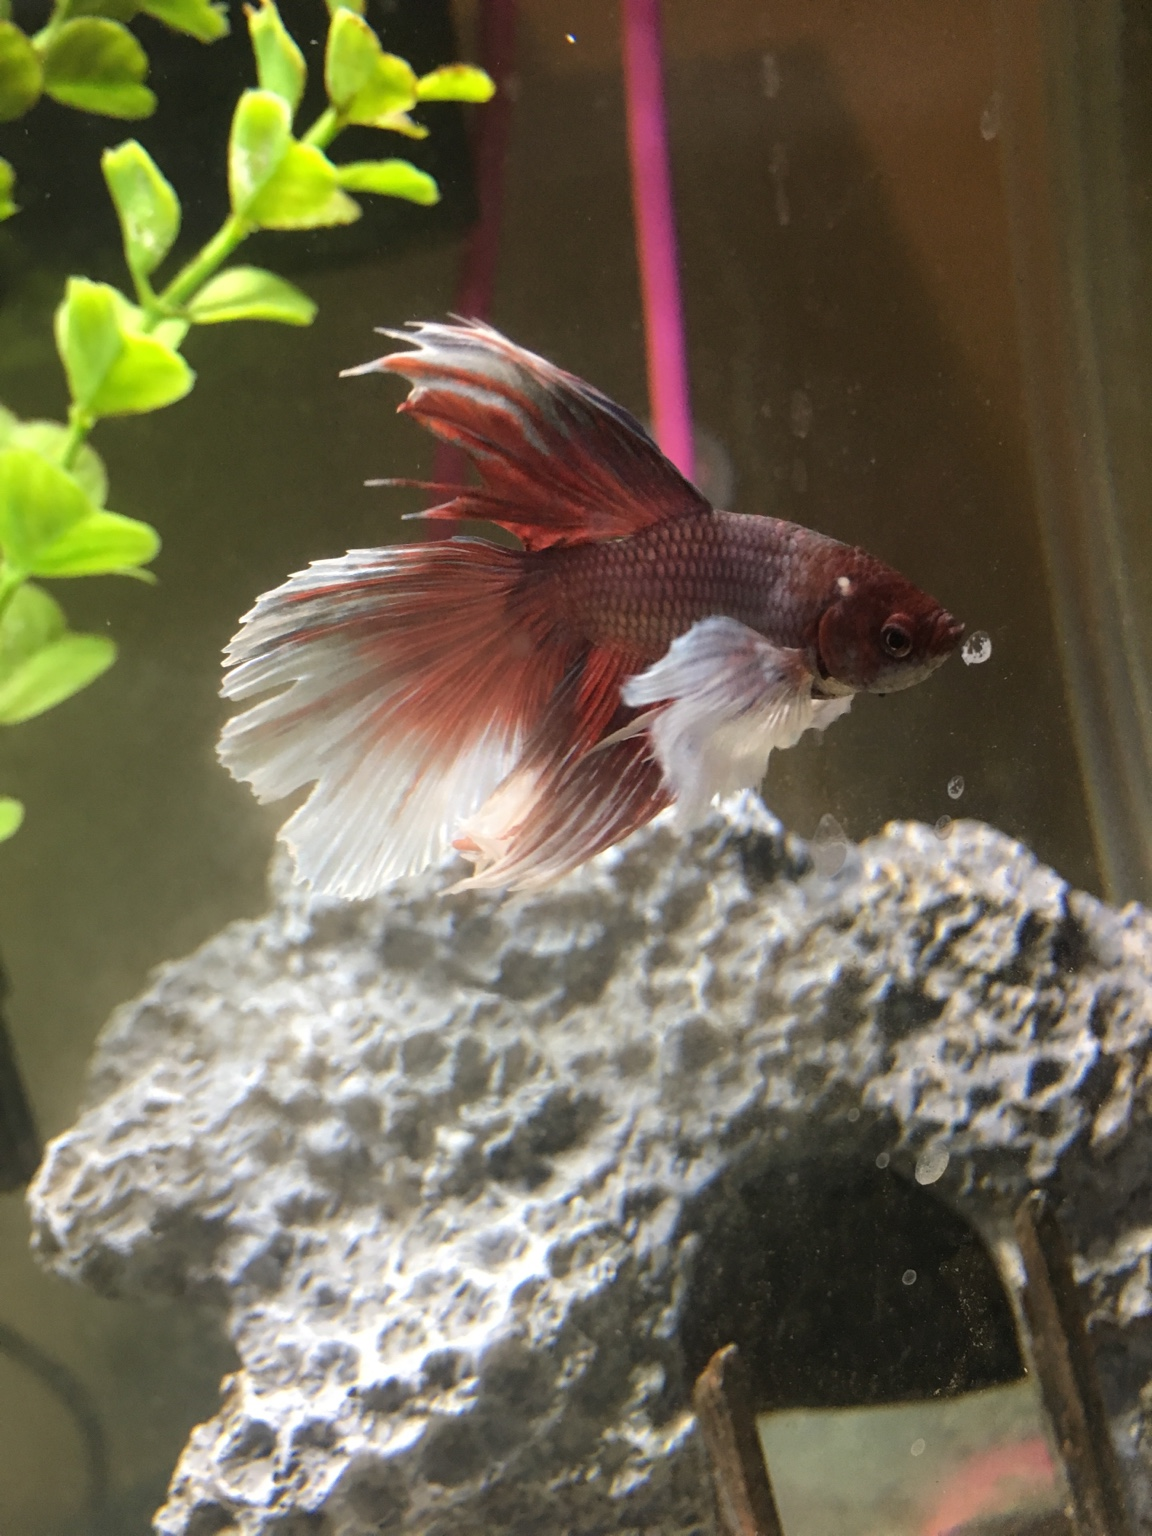 solved) Sick Betta  Done The Research, But Nothing Is Adding